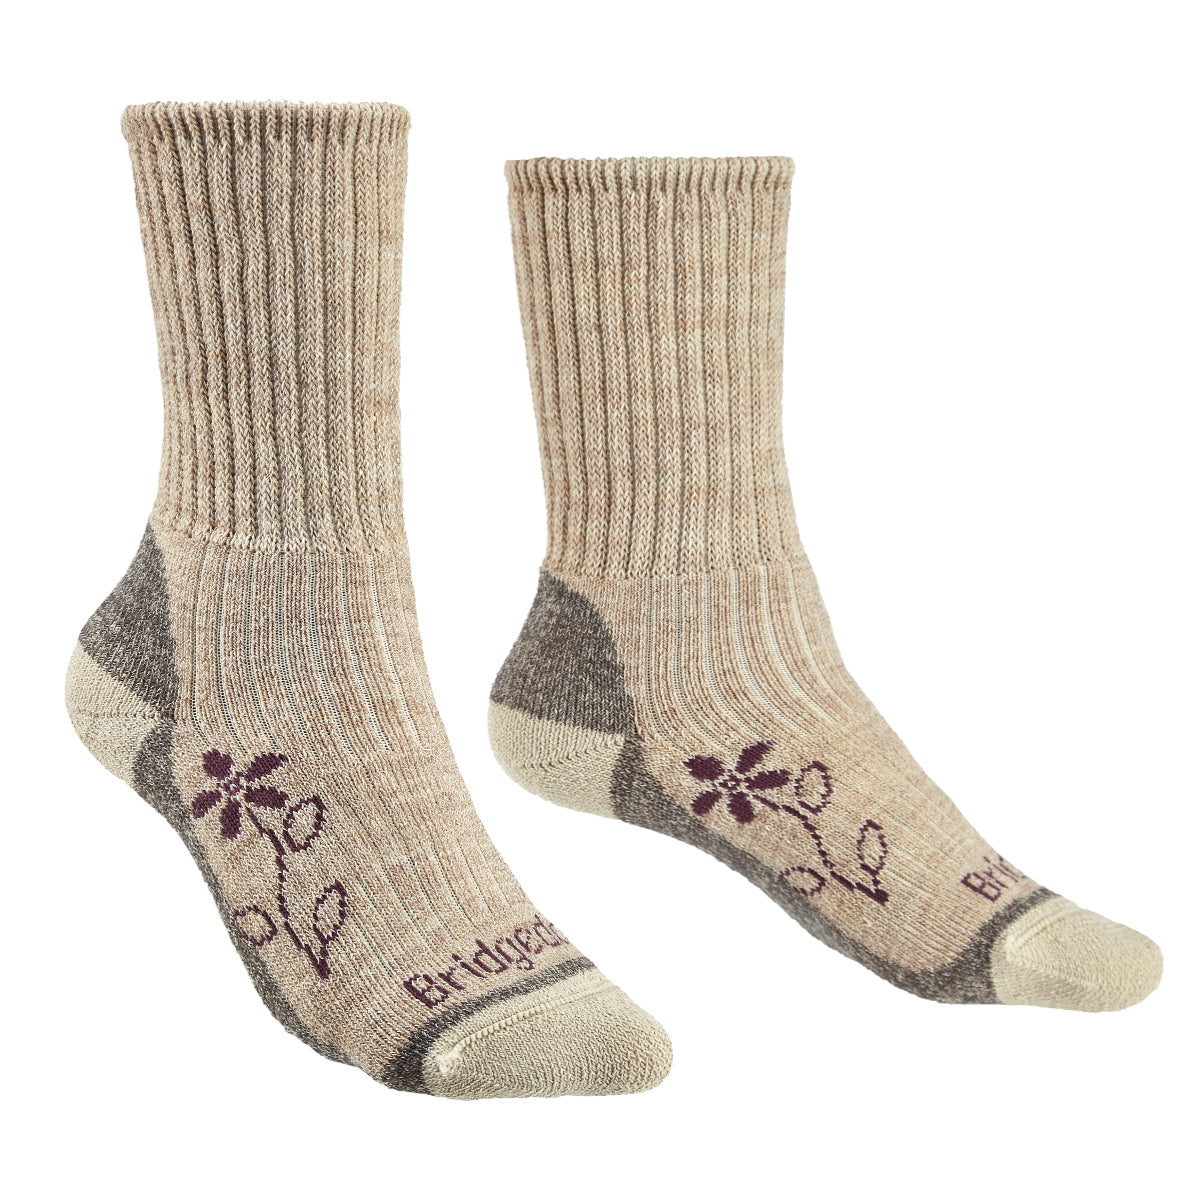 Bridgedale Women's MERINO HIKE Comfort Socks (Midweight Natural)